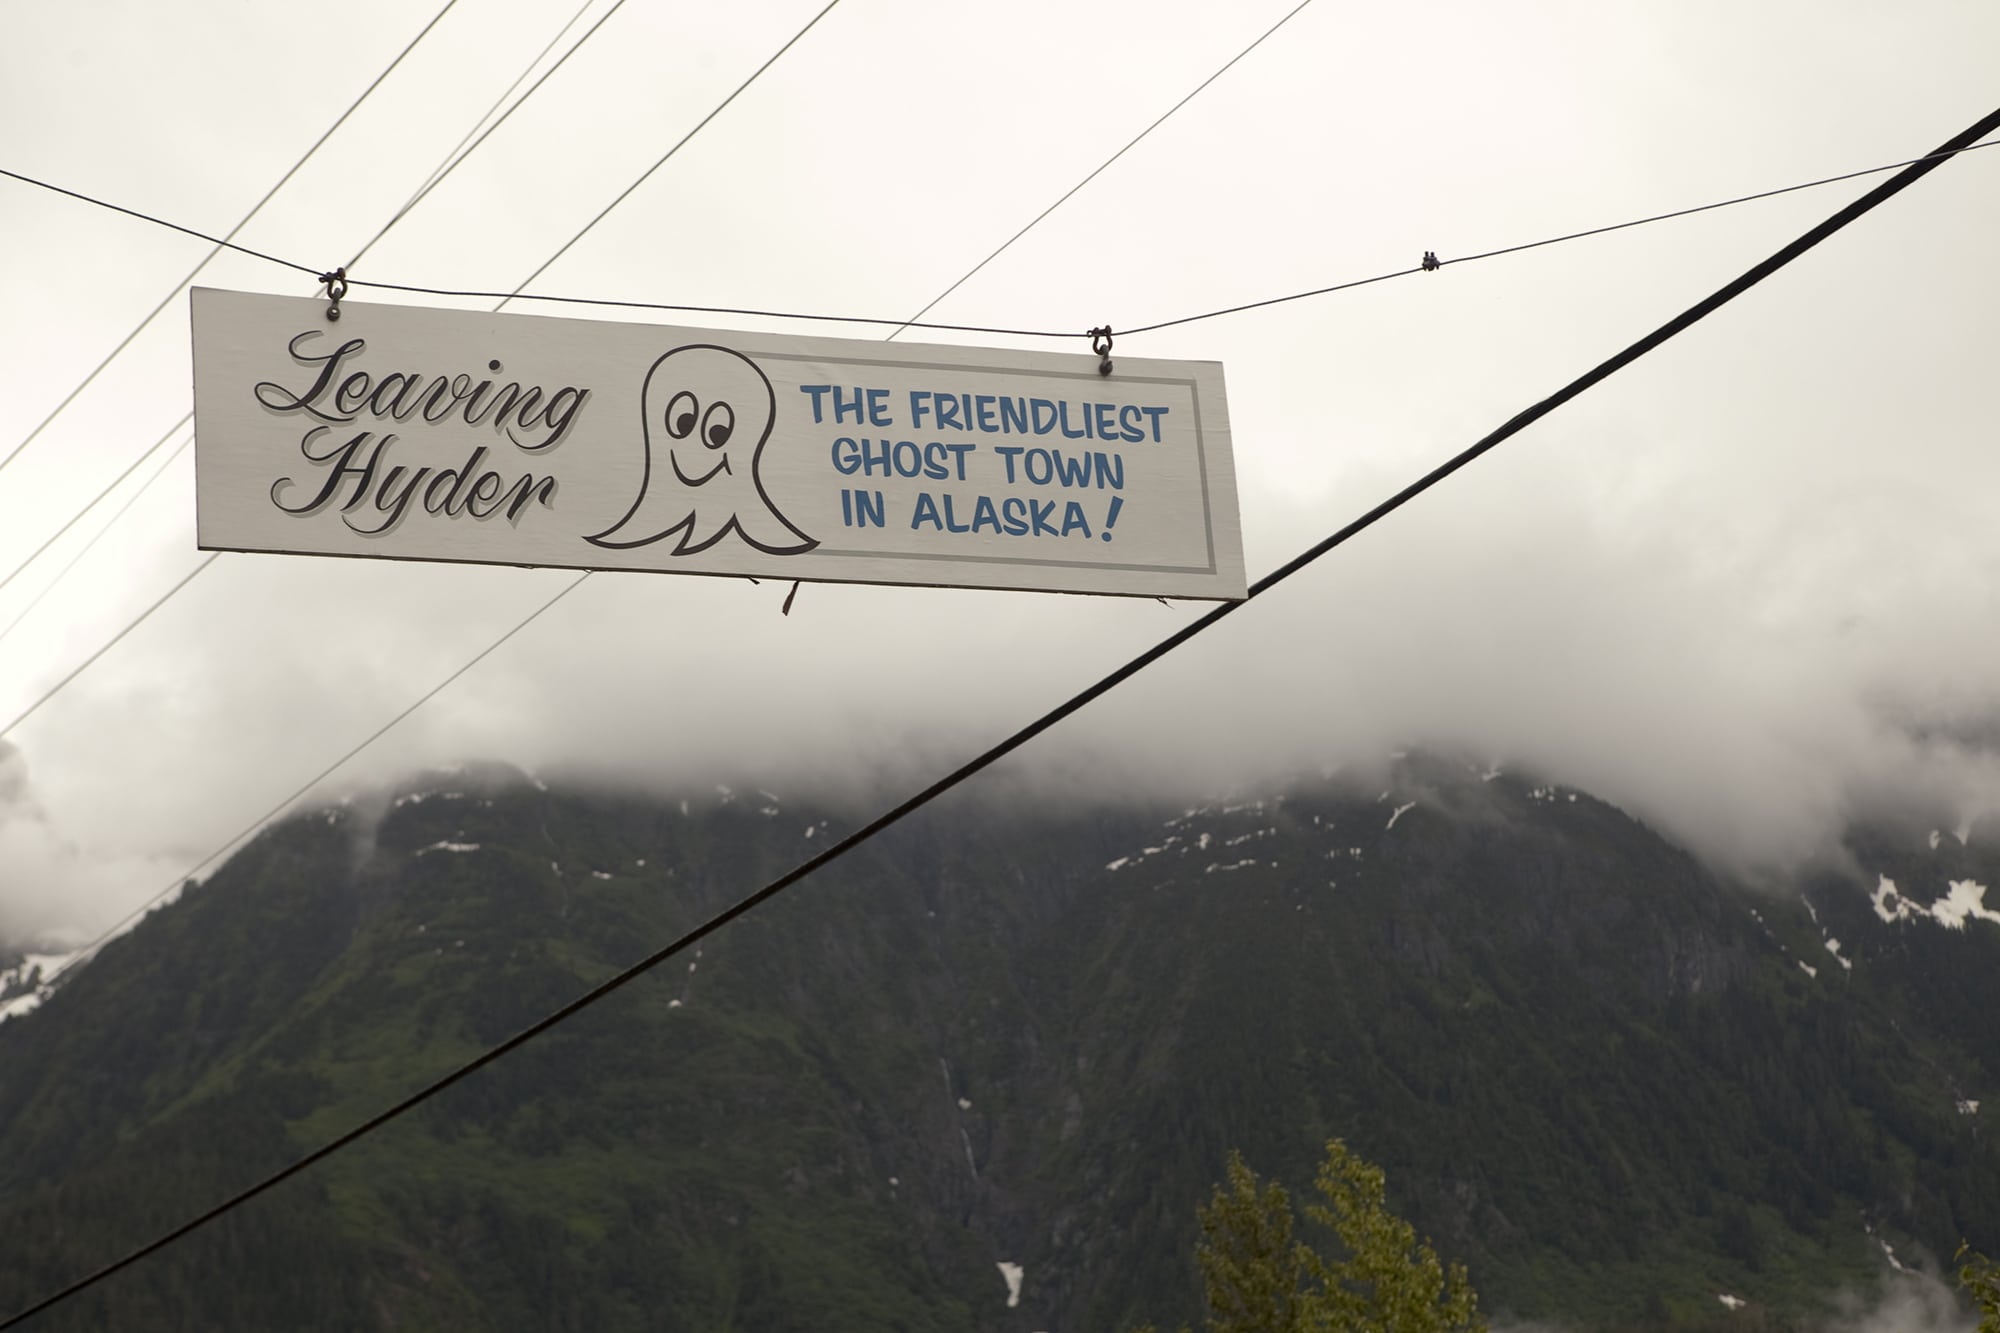 Leaving Hyder - The Friendliest Ghost Town in Alaska.